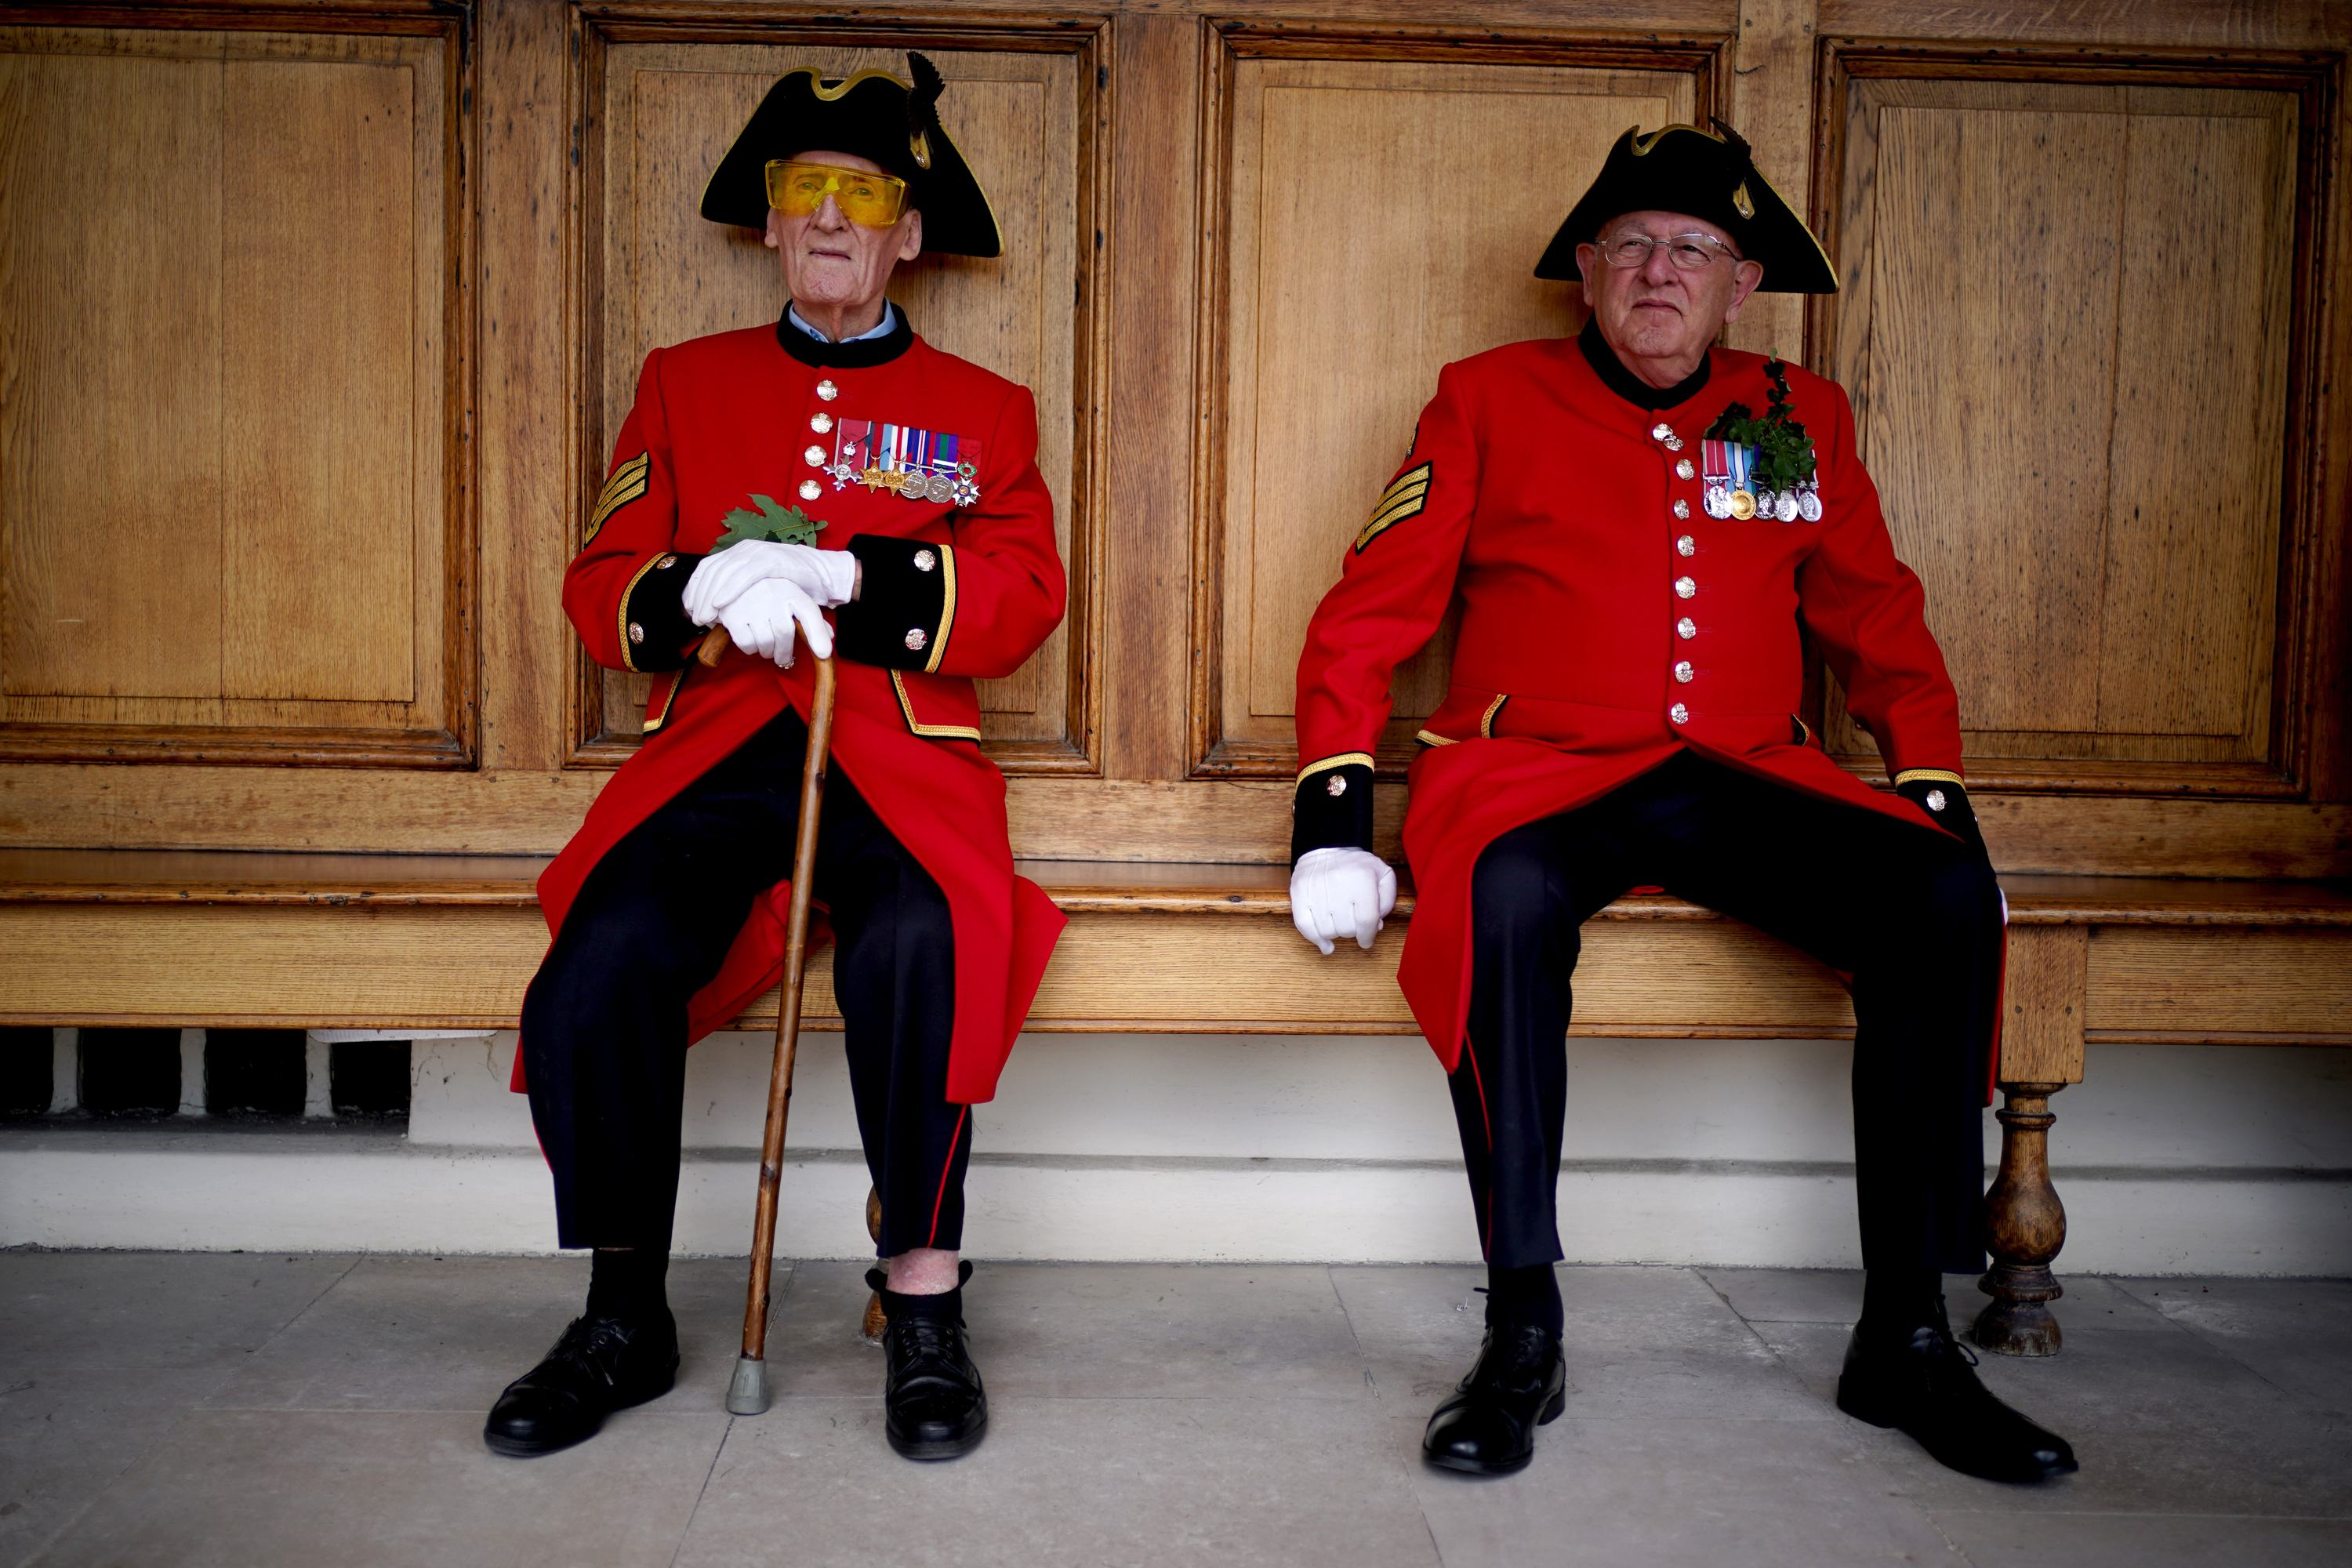 <p>Chelsea pensioner Bob Sullivan (left), 98, sits with a fellow veteran ahead of the annual Founder's Day Parade at the Royal Hospital Chelsea, London. Picture date: Thursday August 5, 2021.</p>